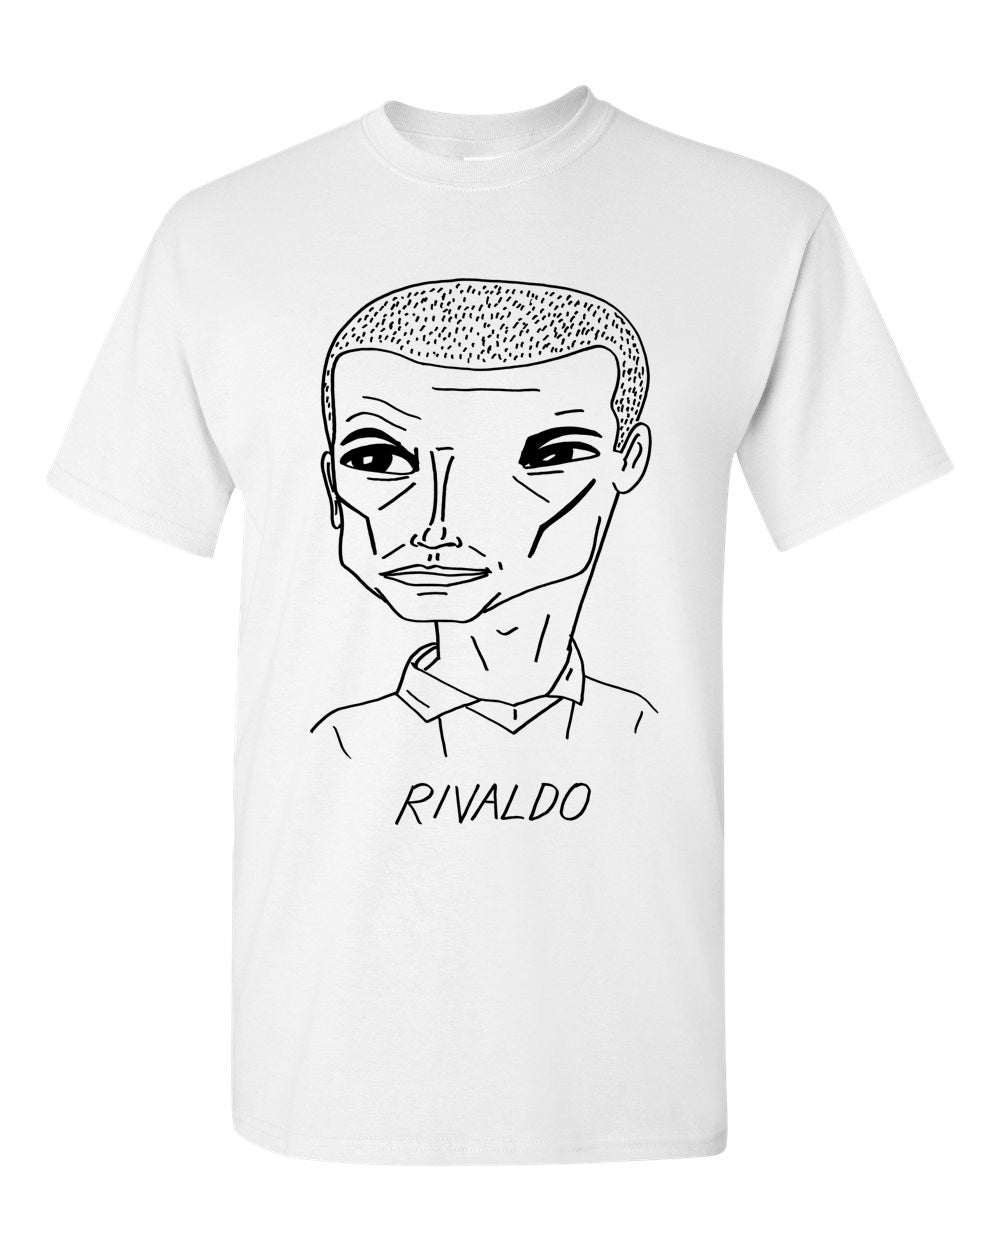 Badly Drawn Footballers T-shirt - Rivaldo